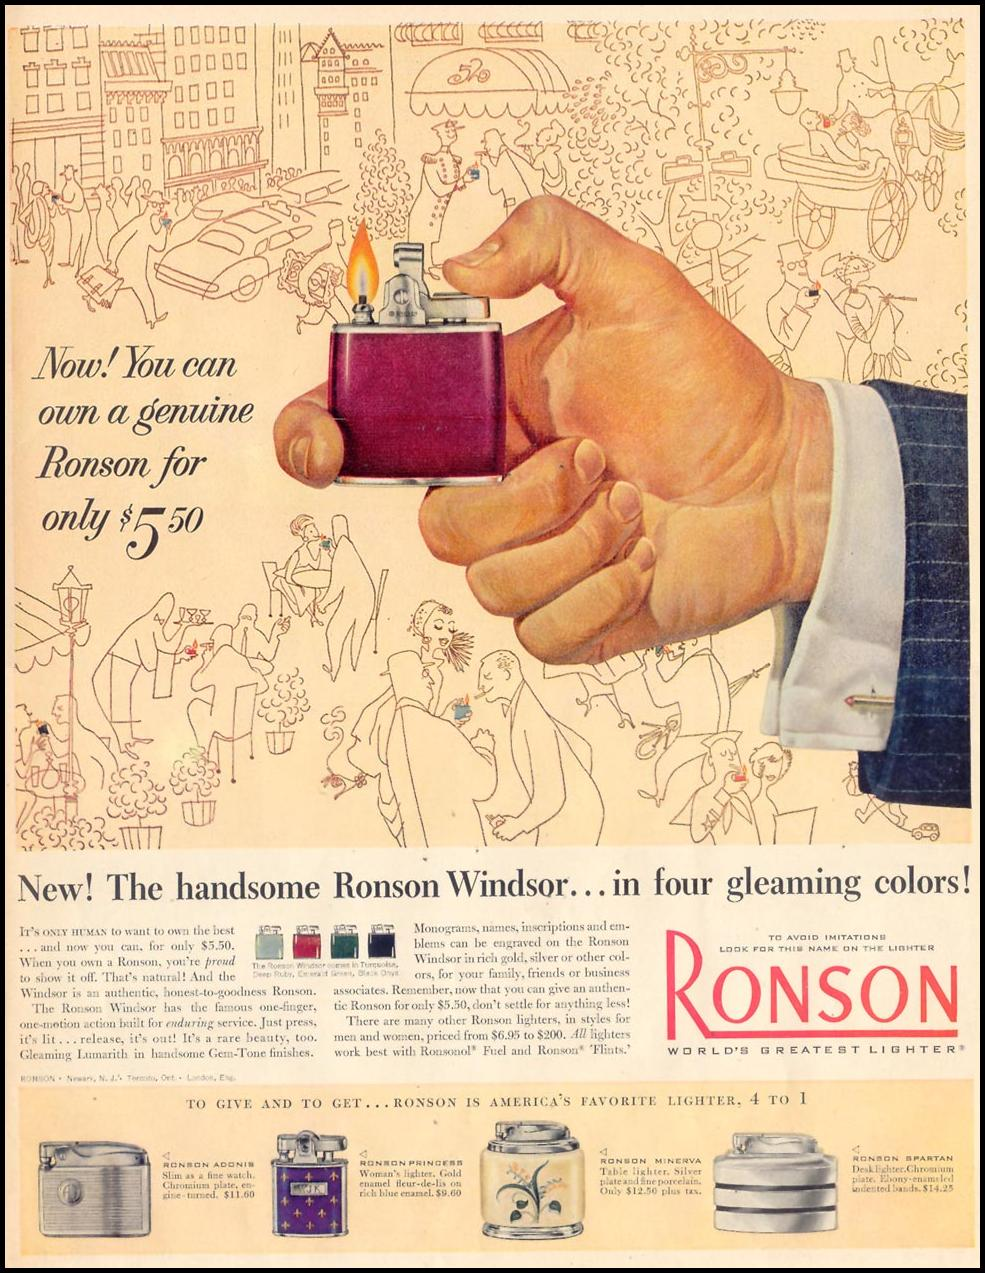 RONSON WINDSOR LIGHTERS LIFE 04/13/1953 p. 171